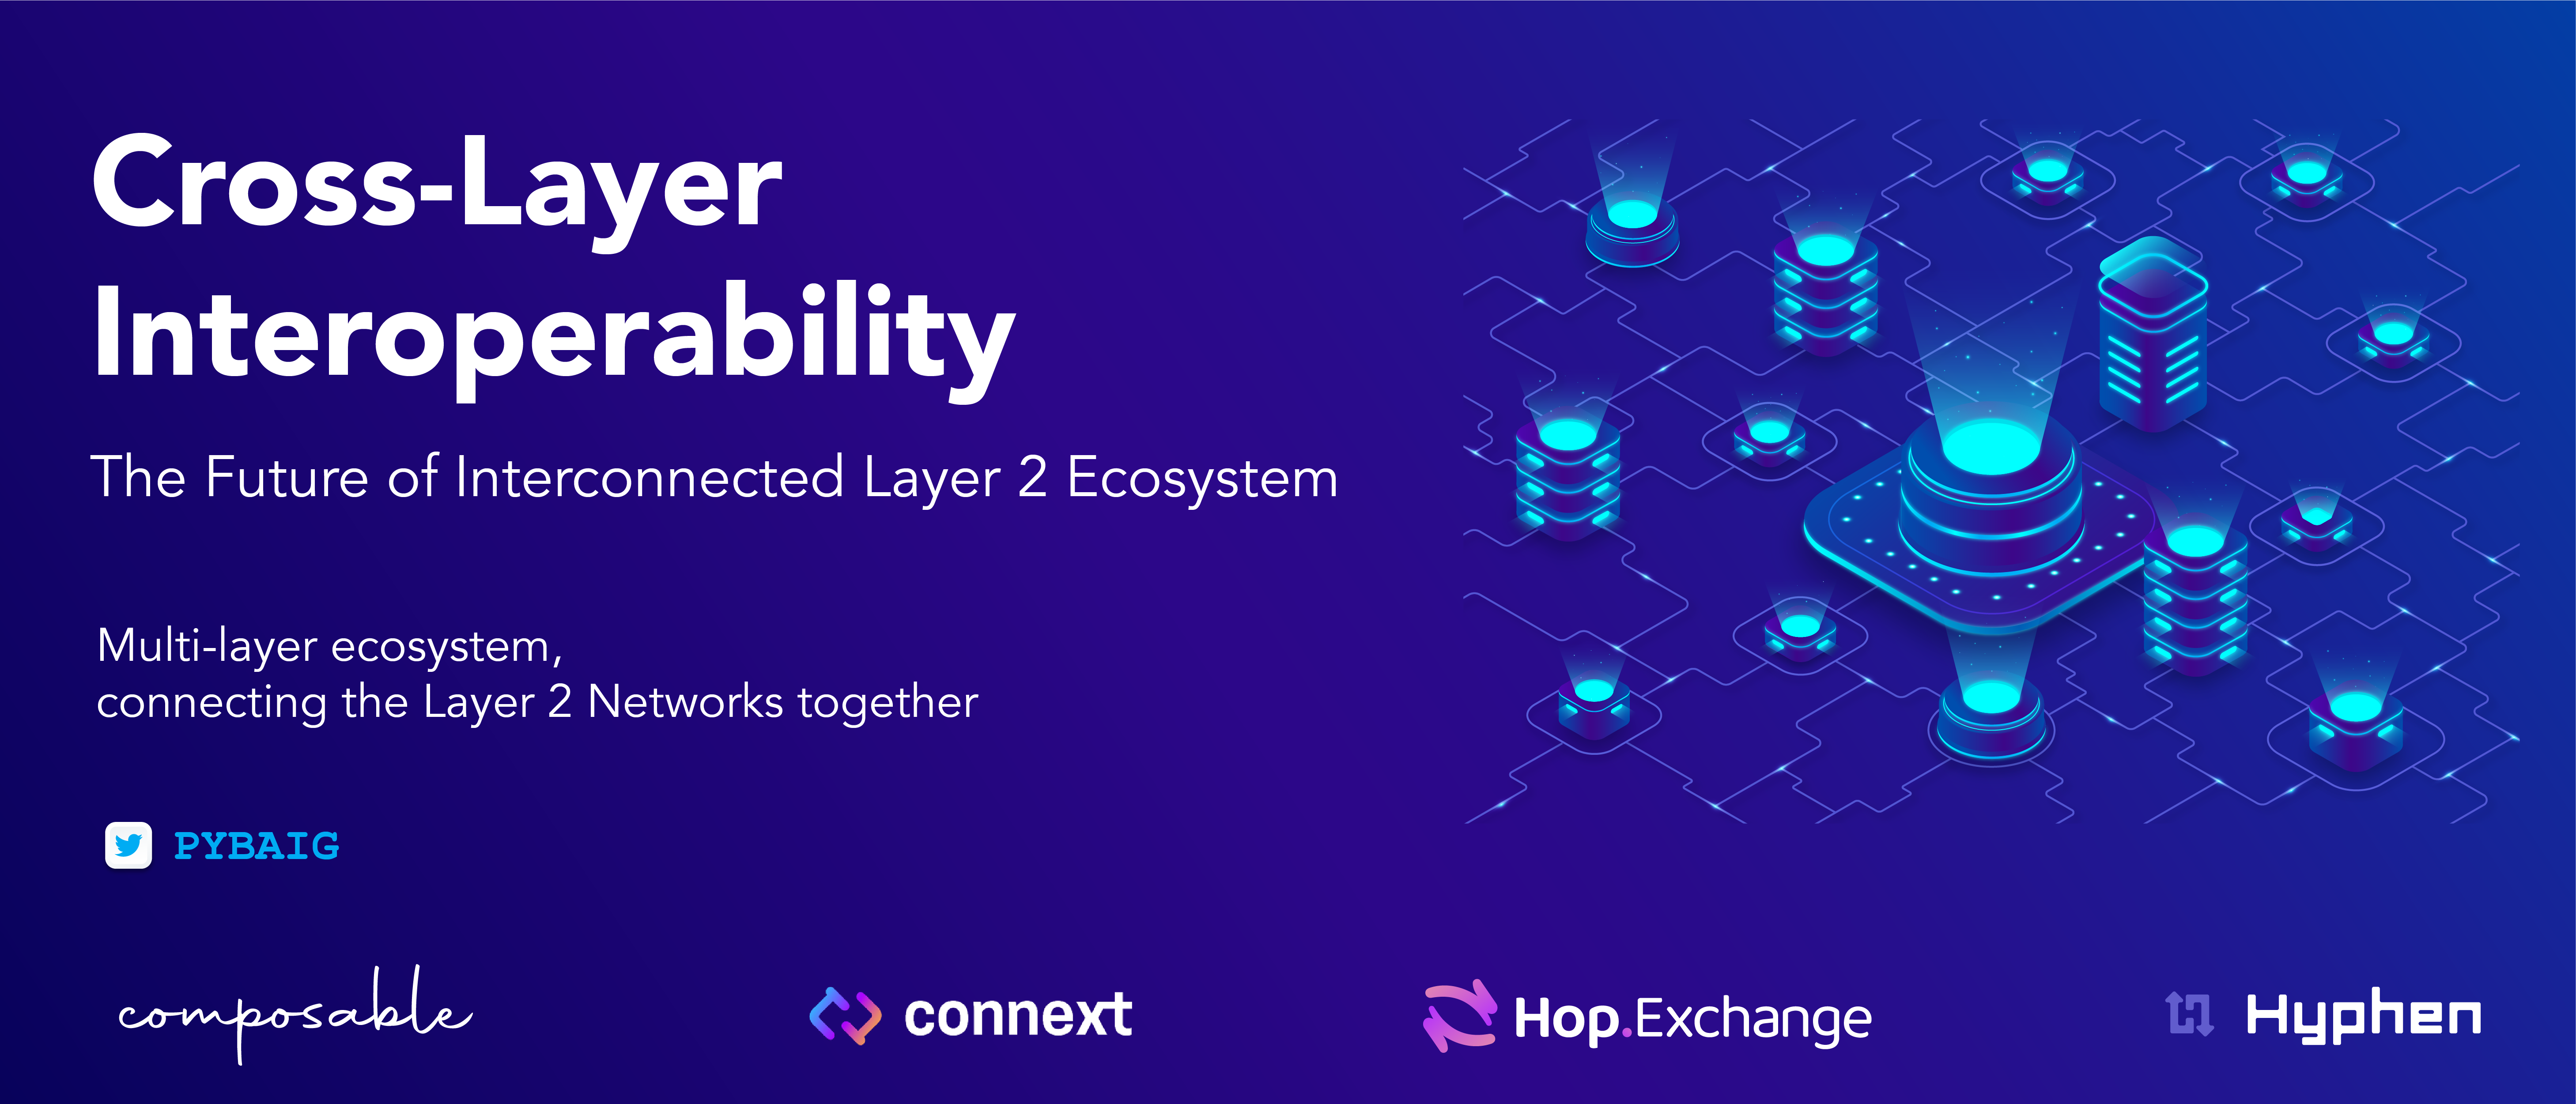 /cross-layer-interoperability-the-future-of-interconnected-layer-2-ecosystem-rum357m feature image